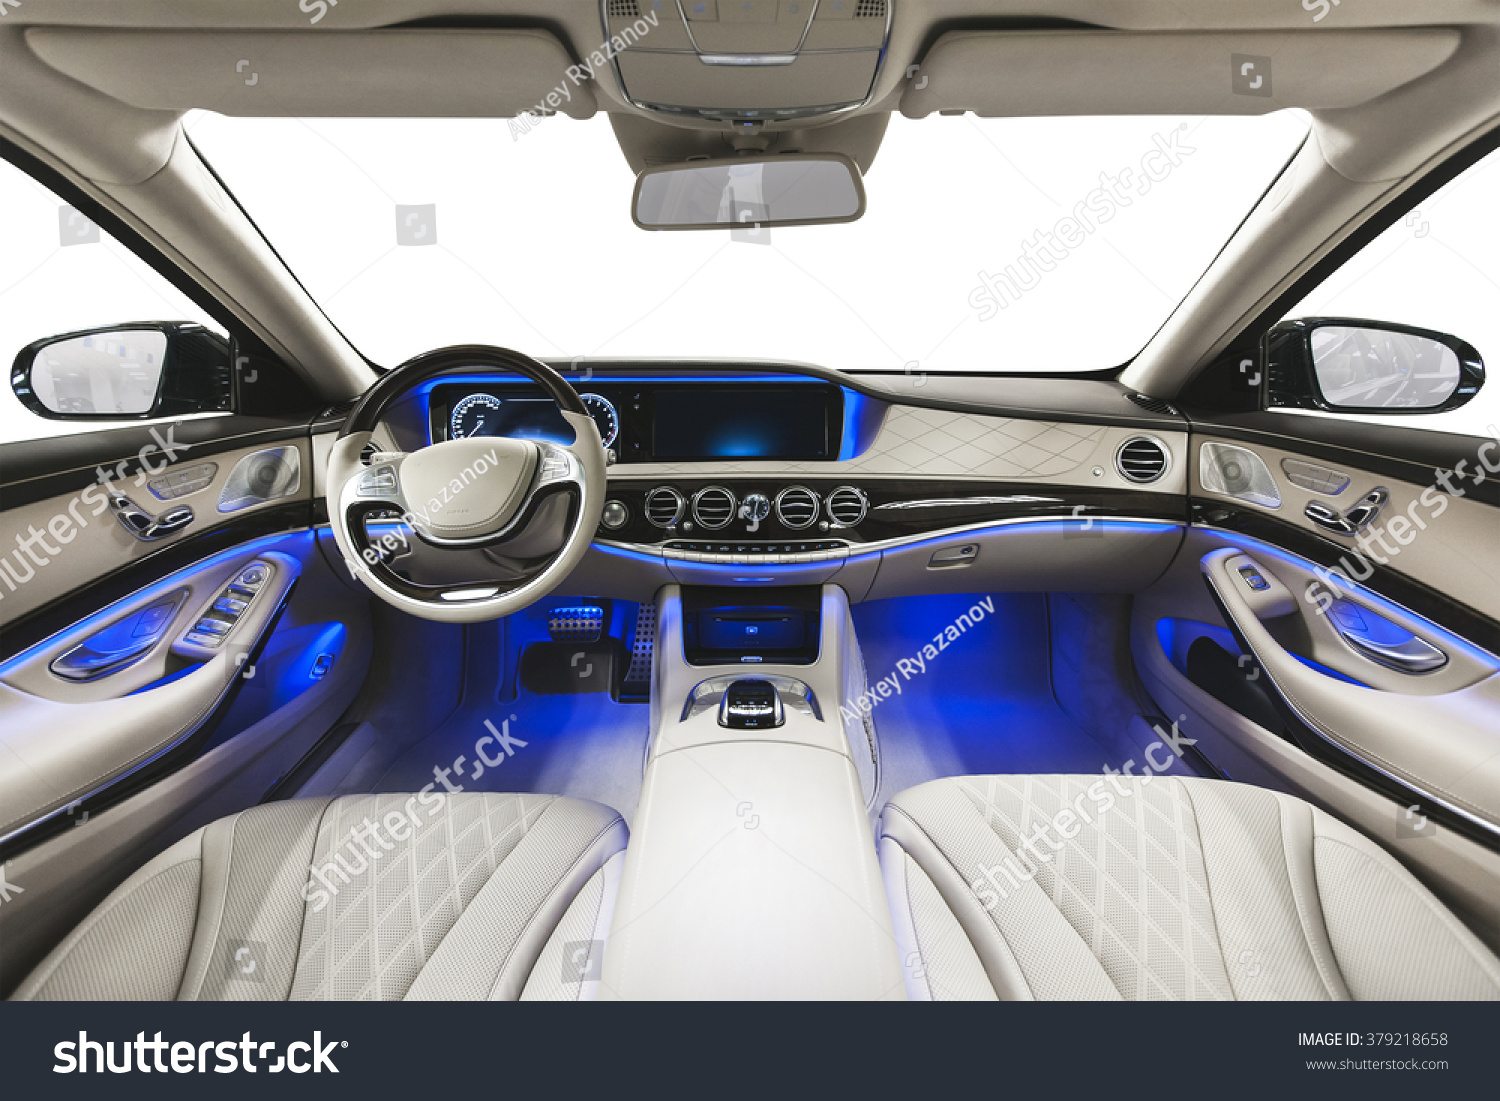 royalty free car interior luxury interior of 379218658 stock photo. Black Bedroom Furniture Sets. Home Design Ideas